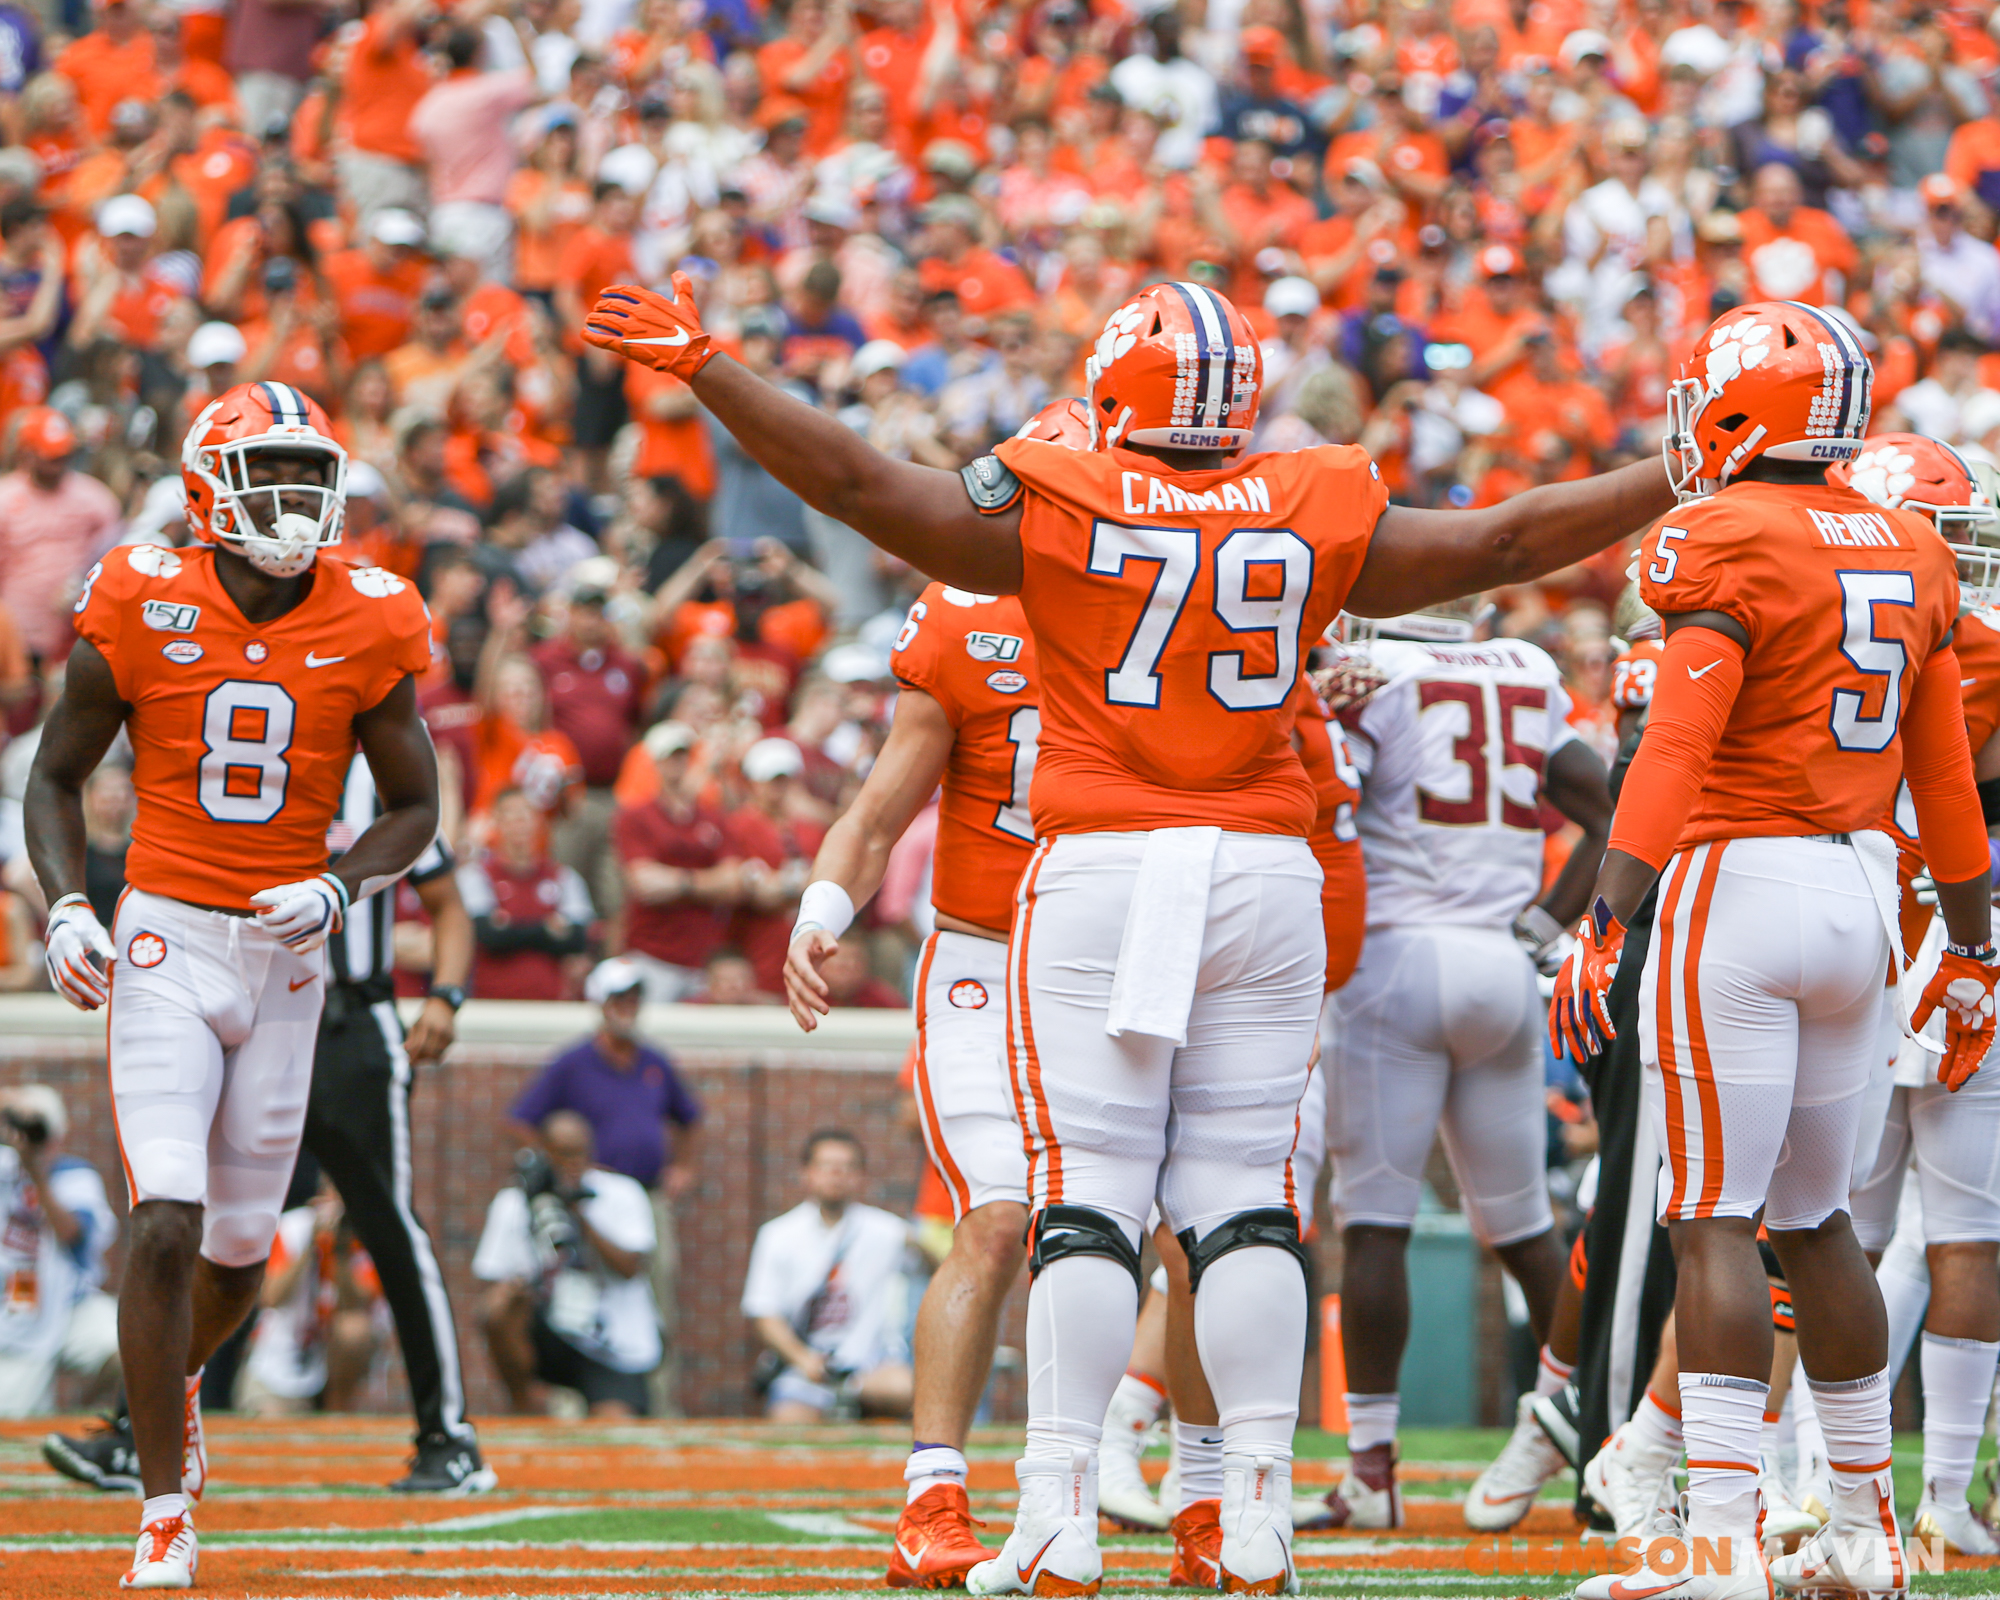 Clemson Hunting For Another Title In 2020